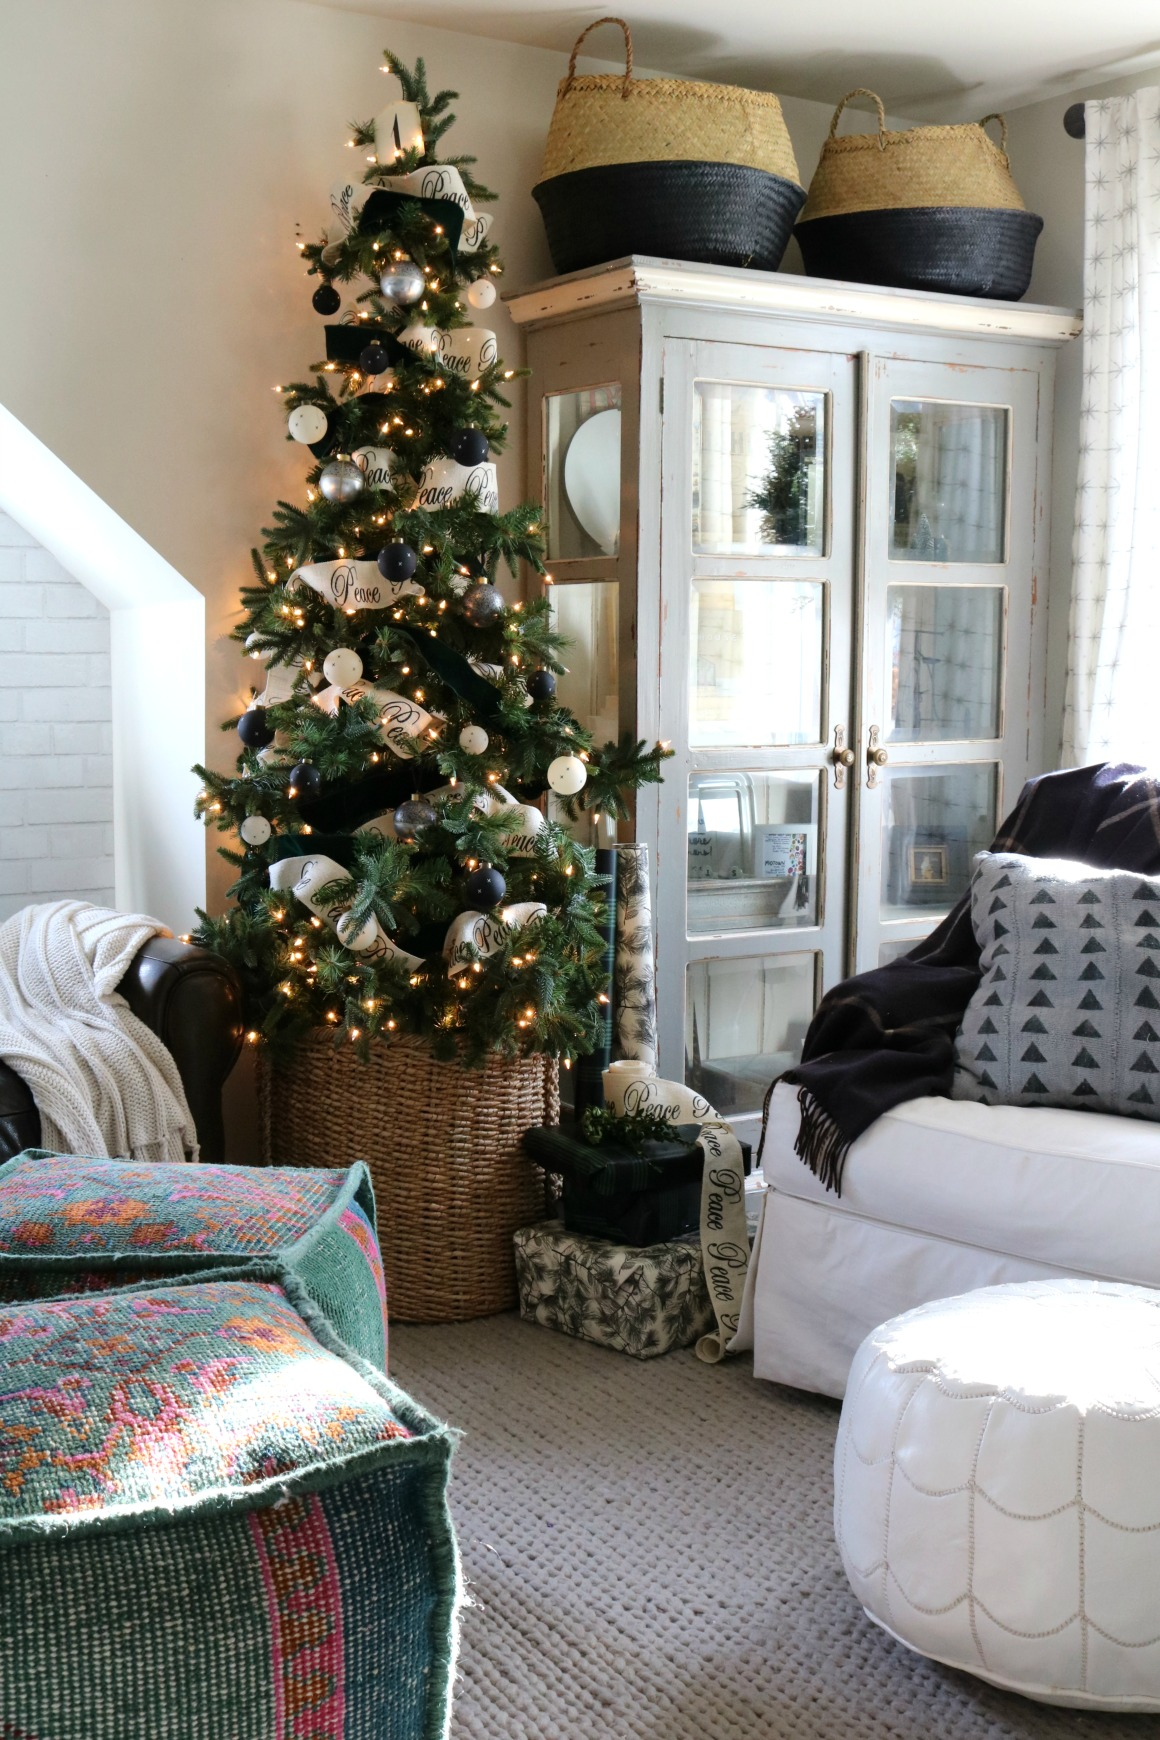 christmas decor in a small cape family room - Christmas Decorations For Small Spaces